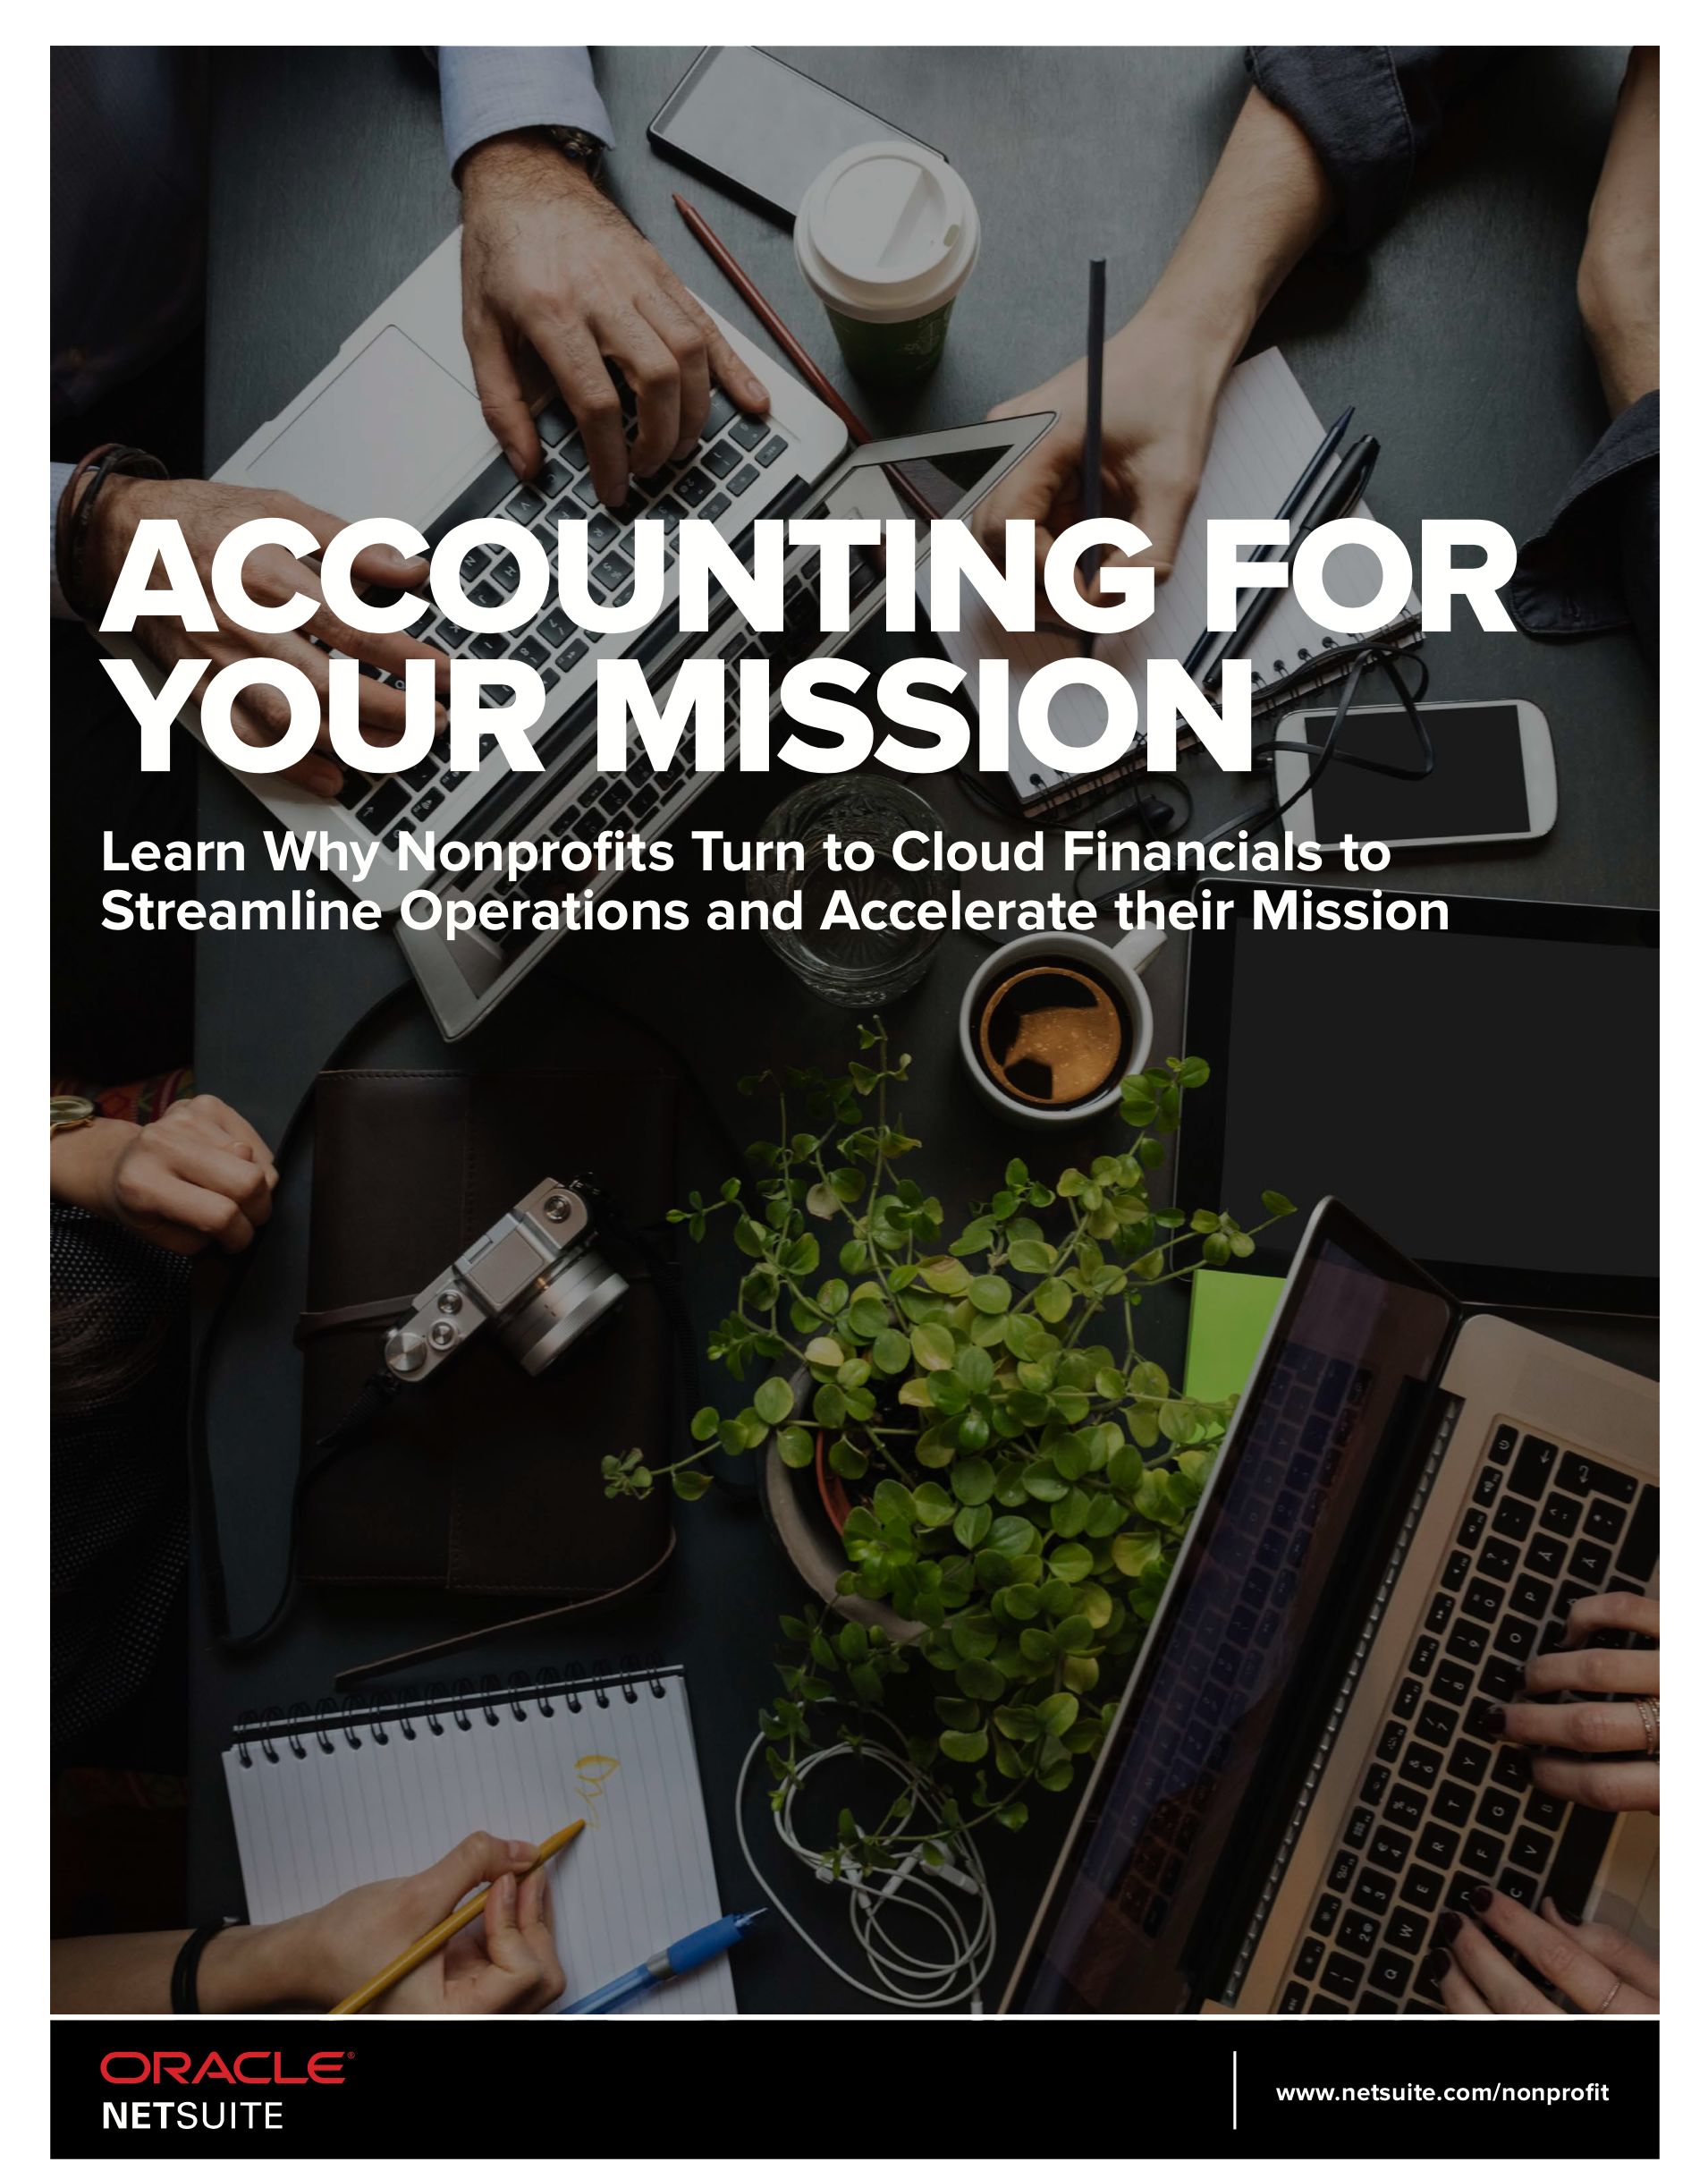 Accounting for your mission